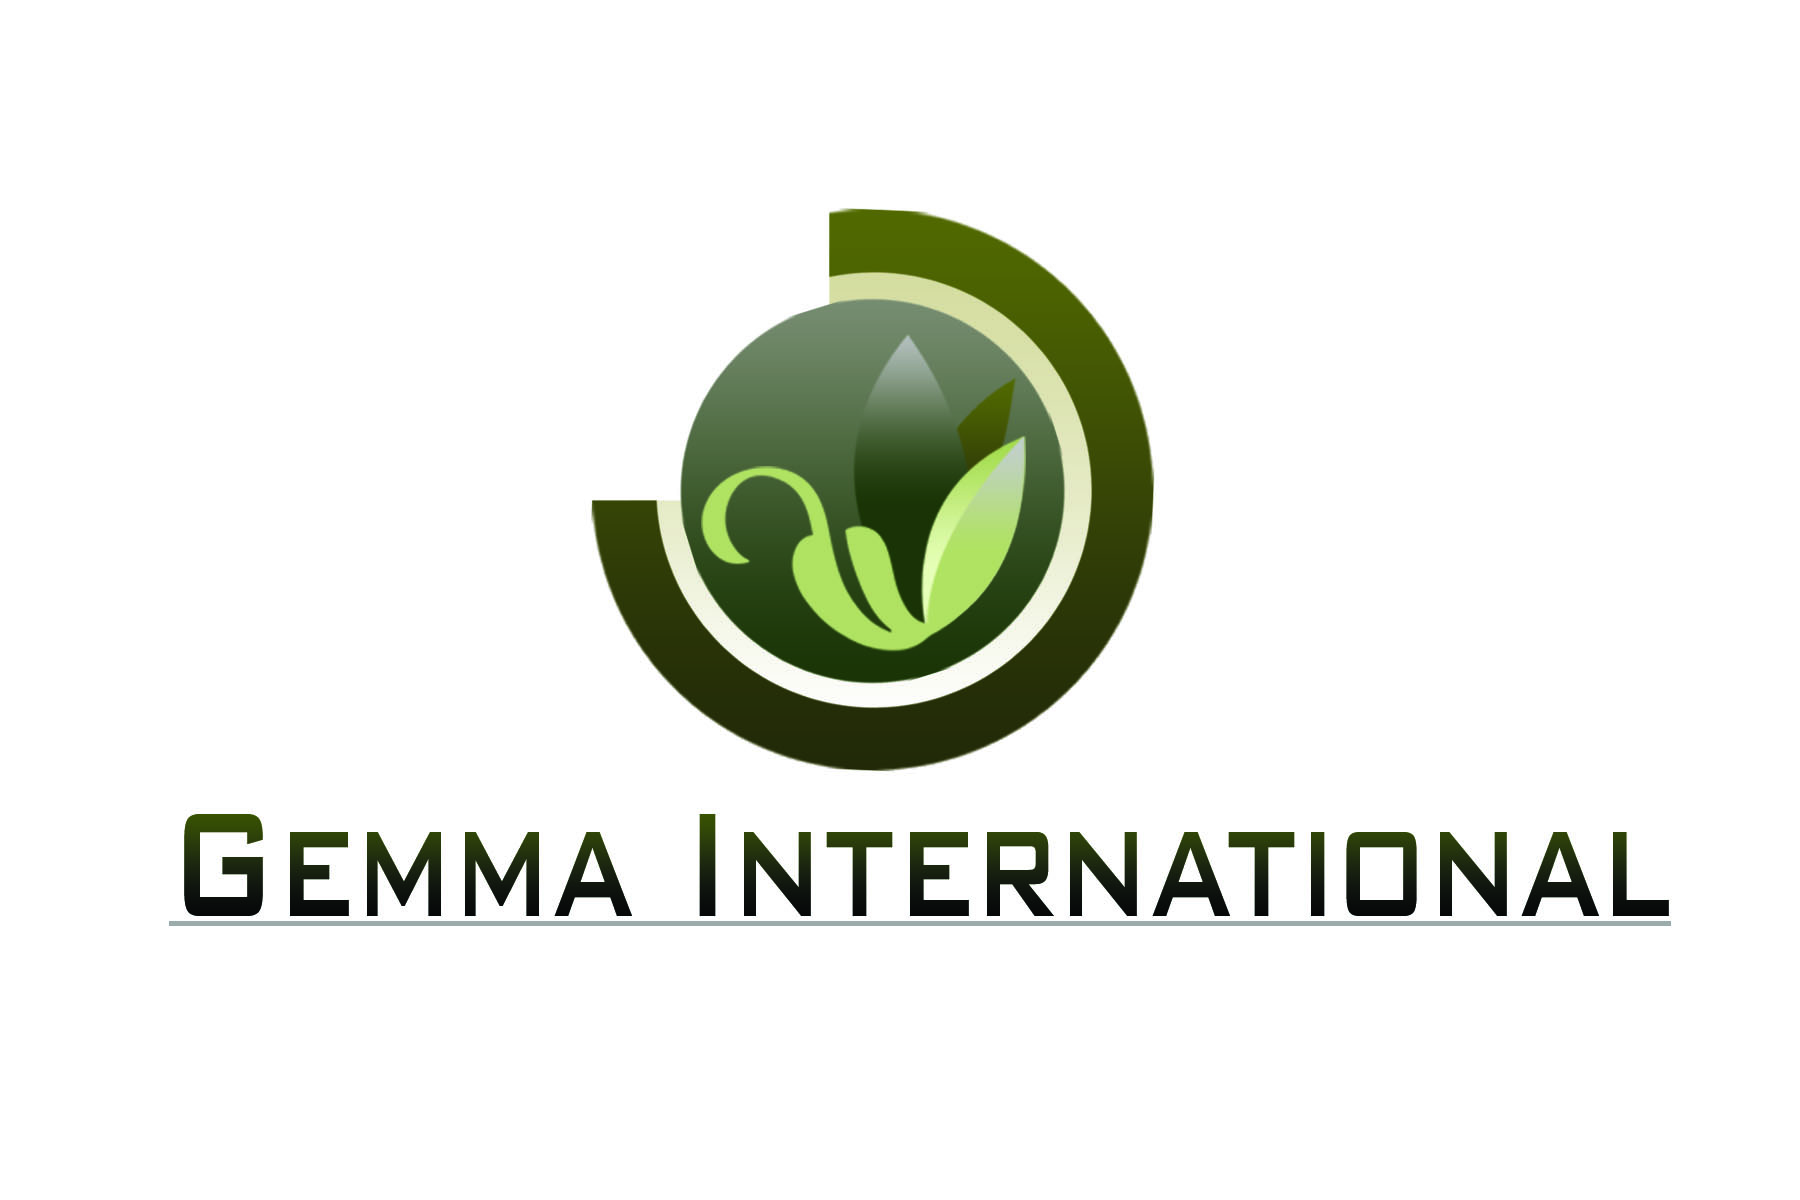 Logo Design by Jastinejay Manliguez - Entry No. 8 in the Logo Design Contest Artistic Logo Design for Gemma International.